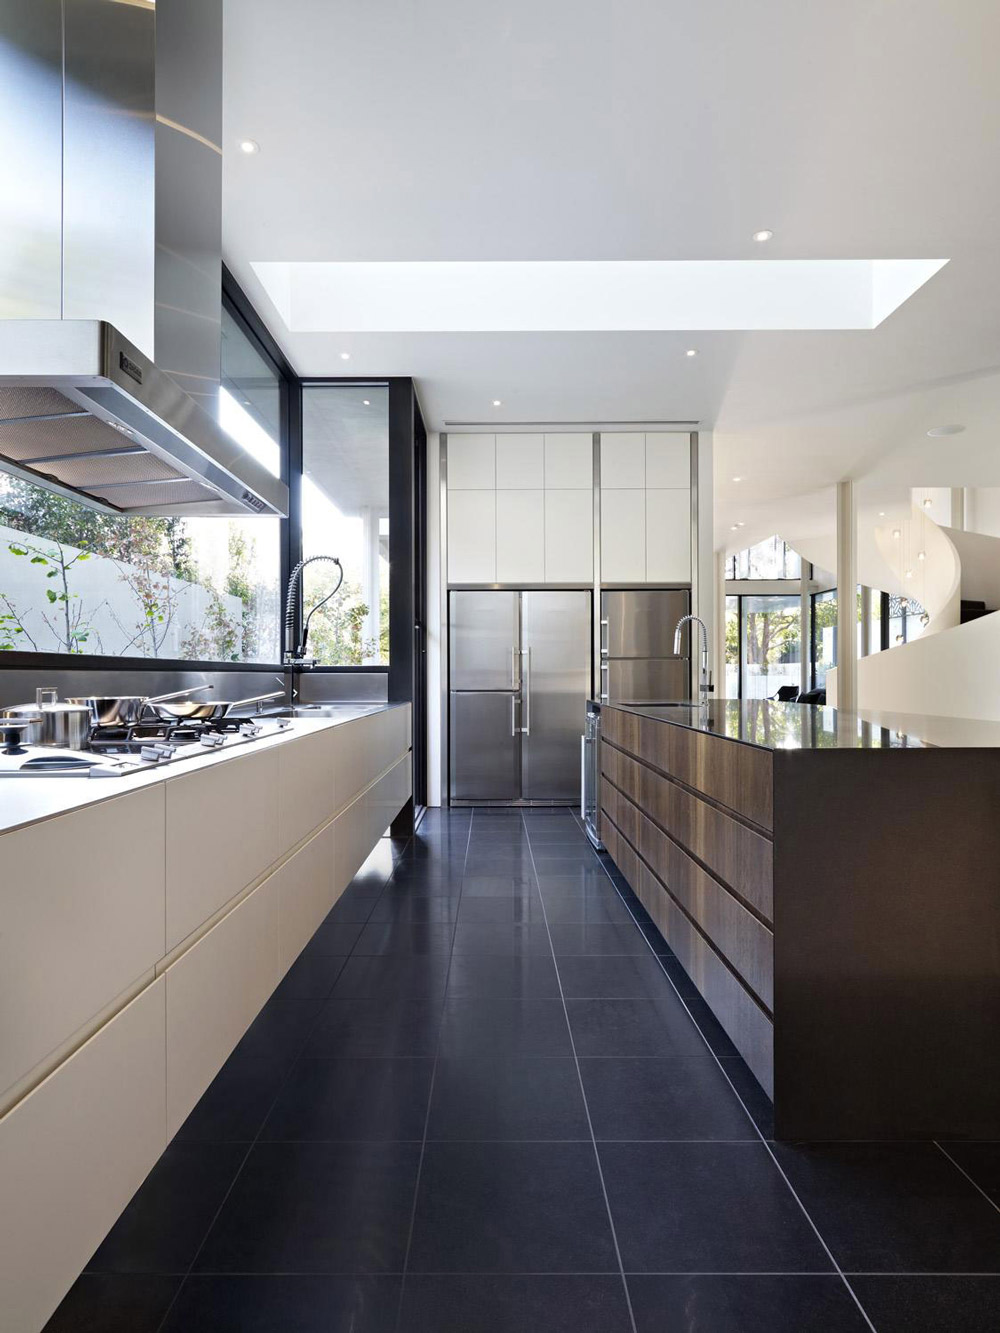 Verdant avenue home in melbourne australia by robert for Modern kitchen designs melbourne